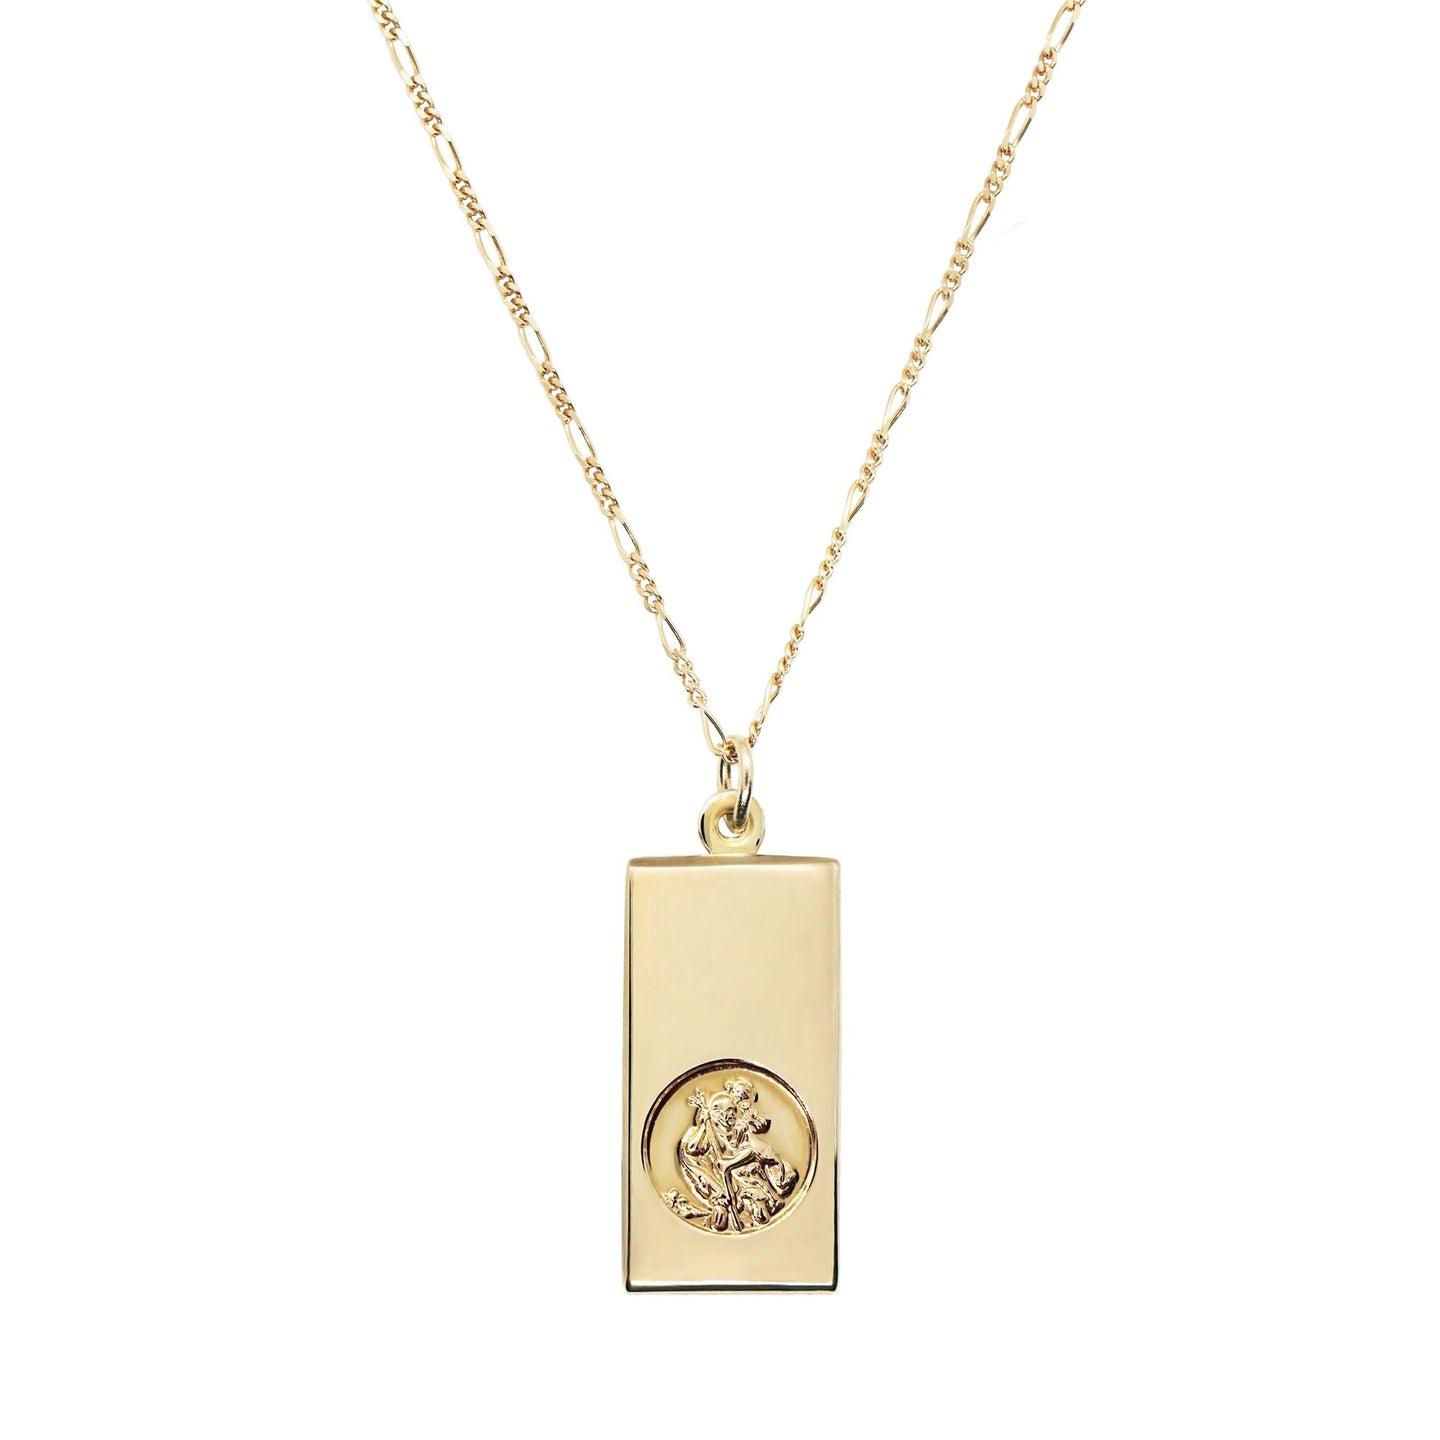 close up of 9K gold st christopher ingot necklace on a white background